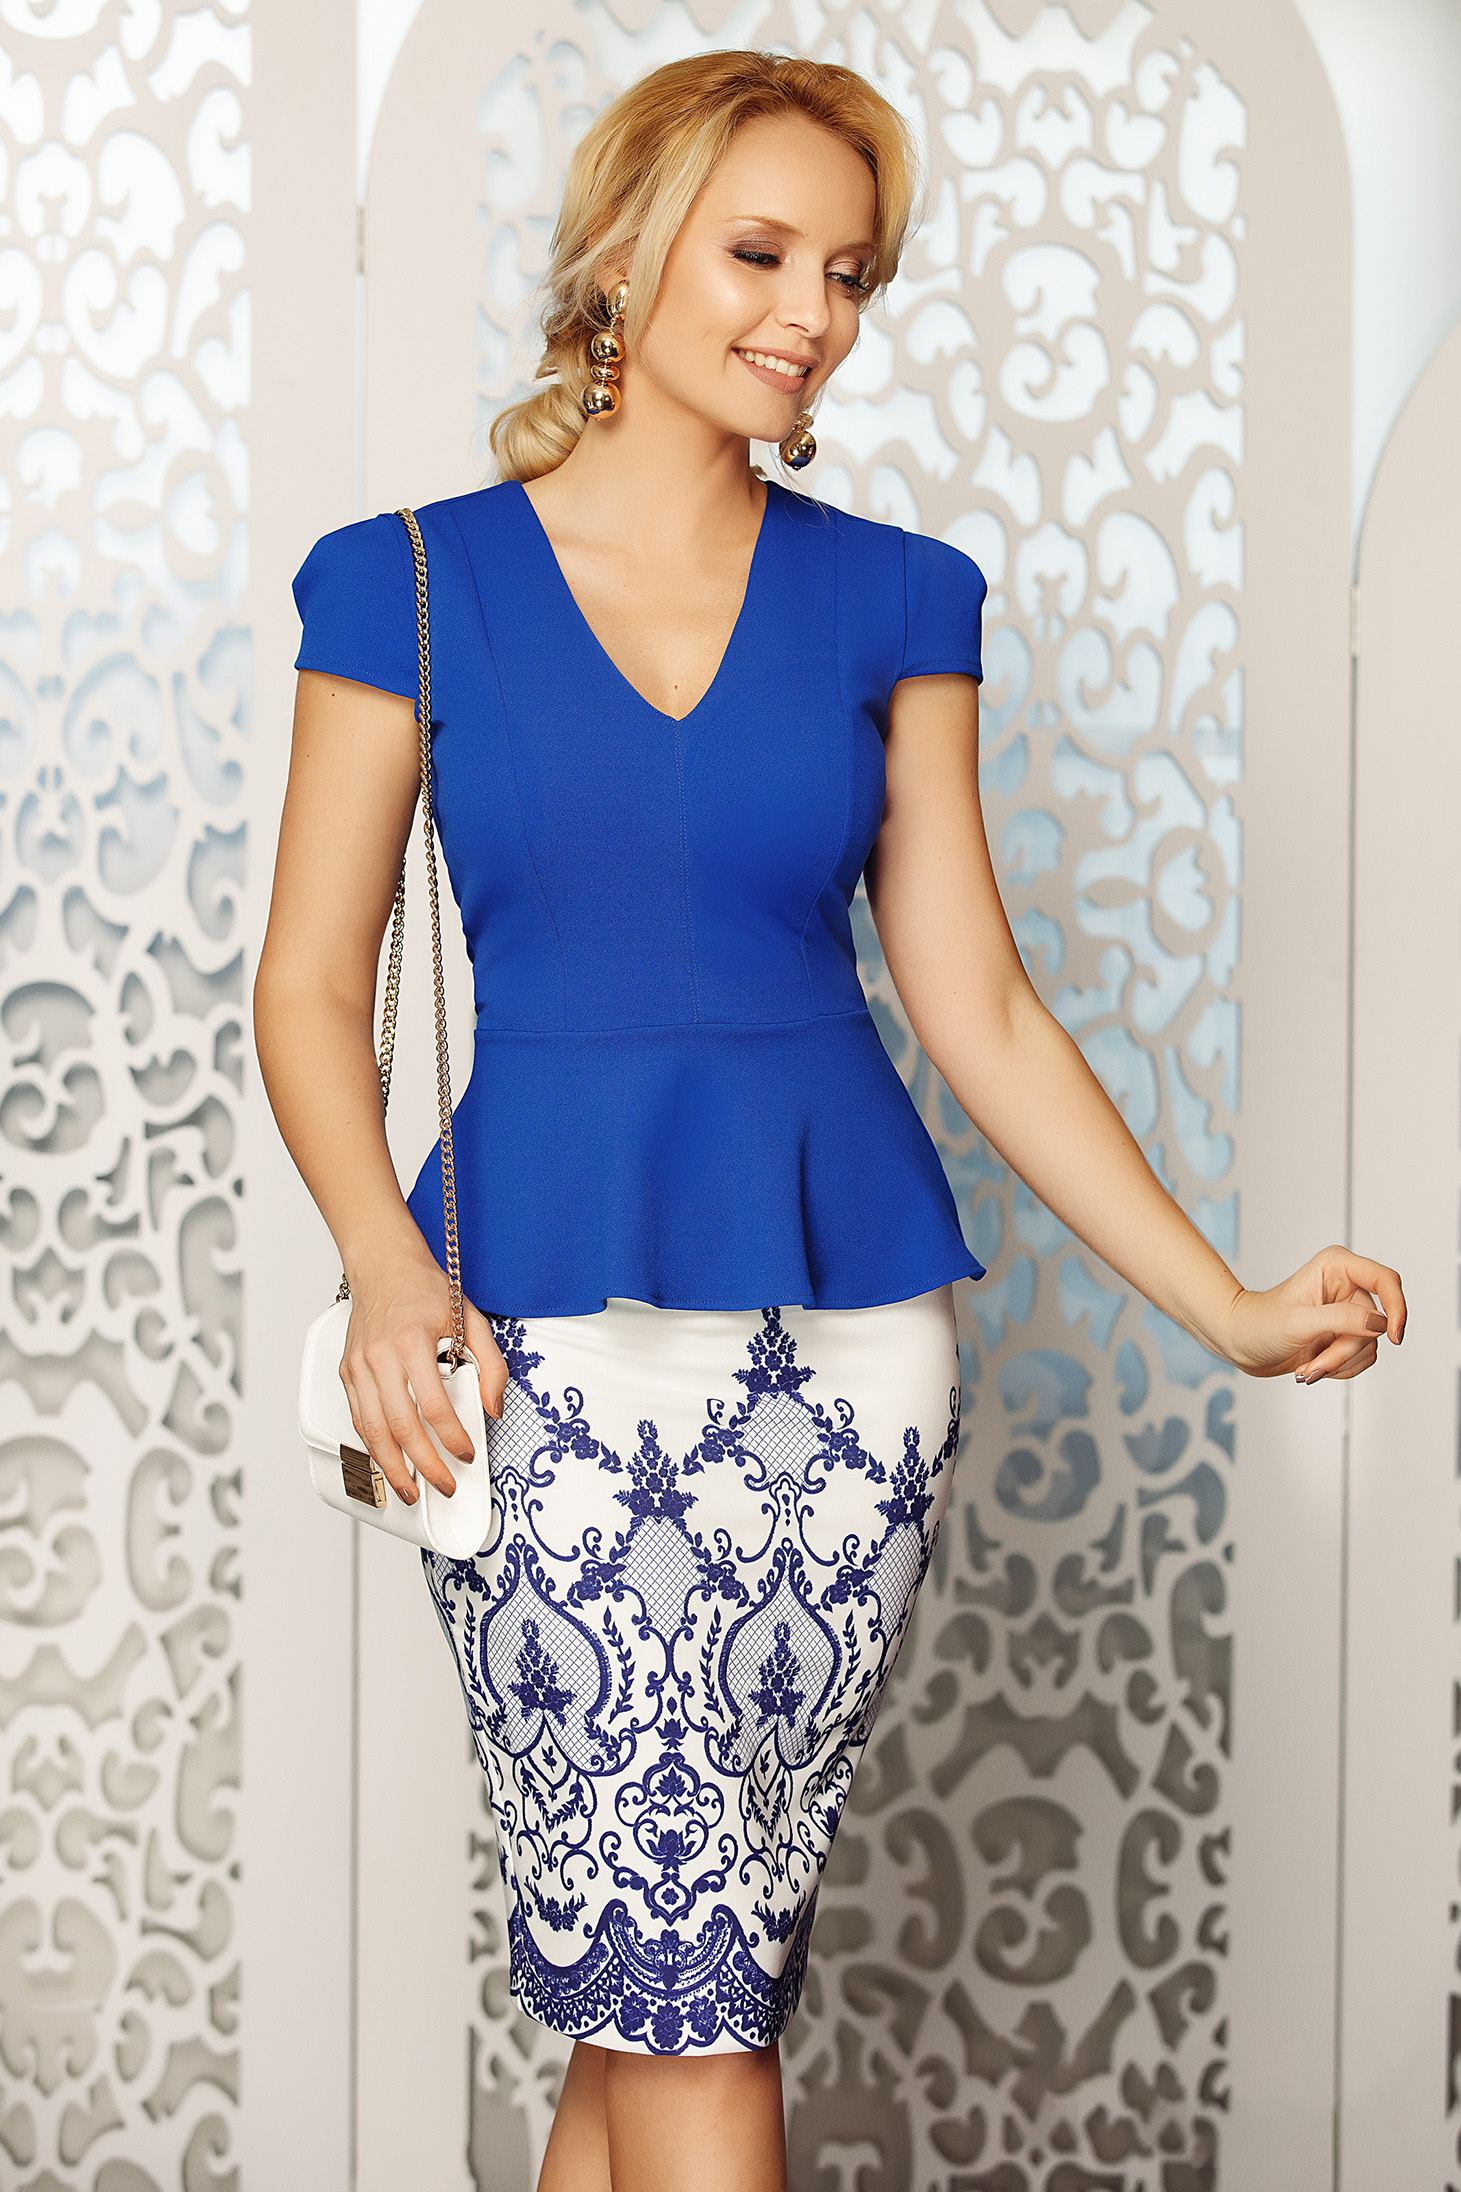 d192cddcb7c5 Fofy blue elegant women`s blouse with v-neckline with tented cut with ...